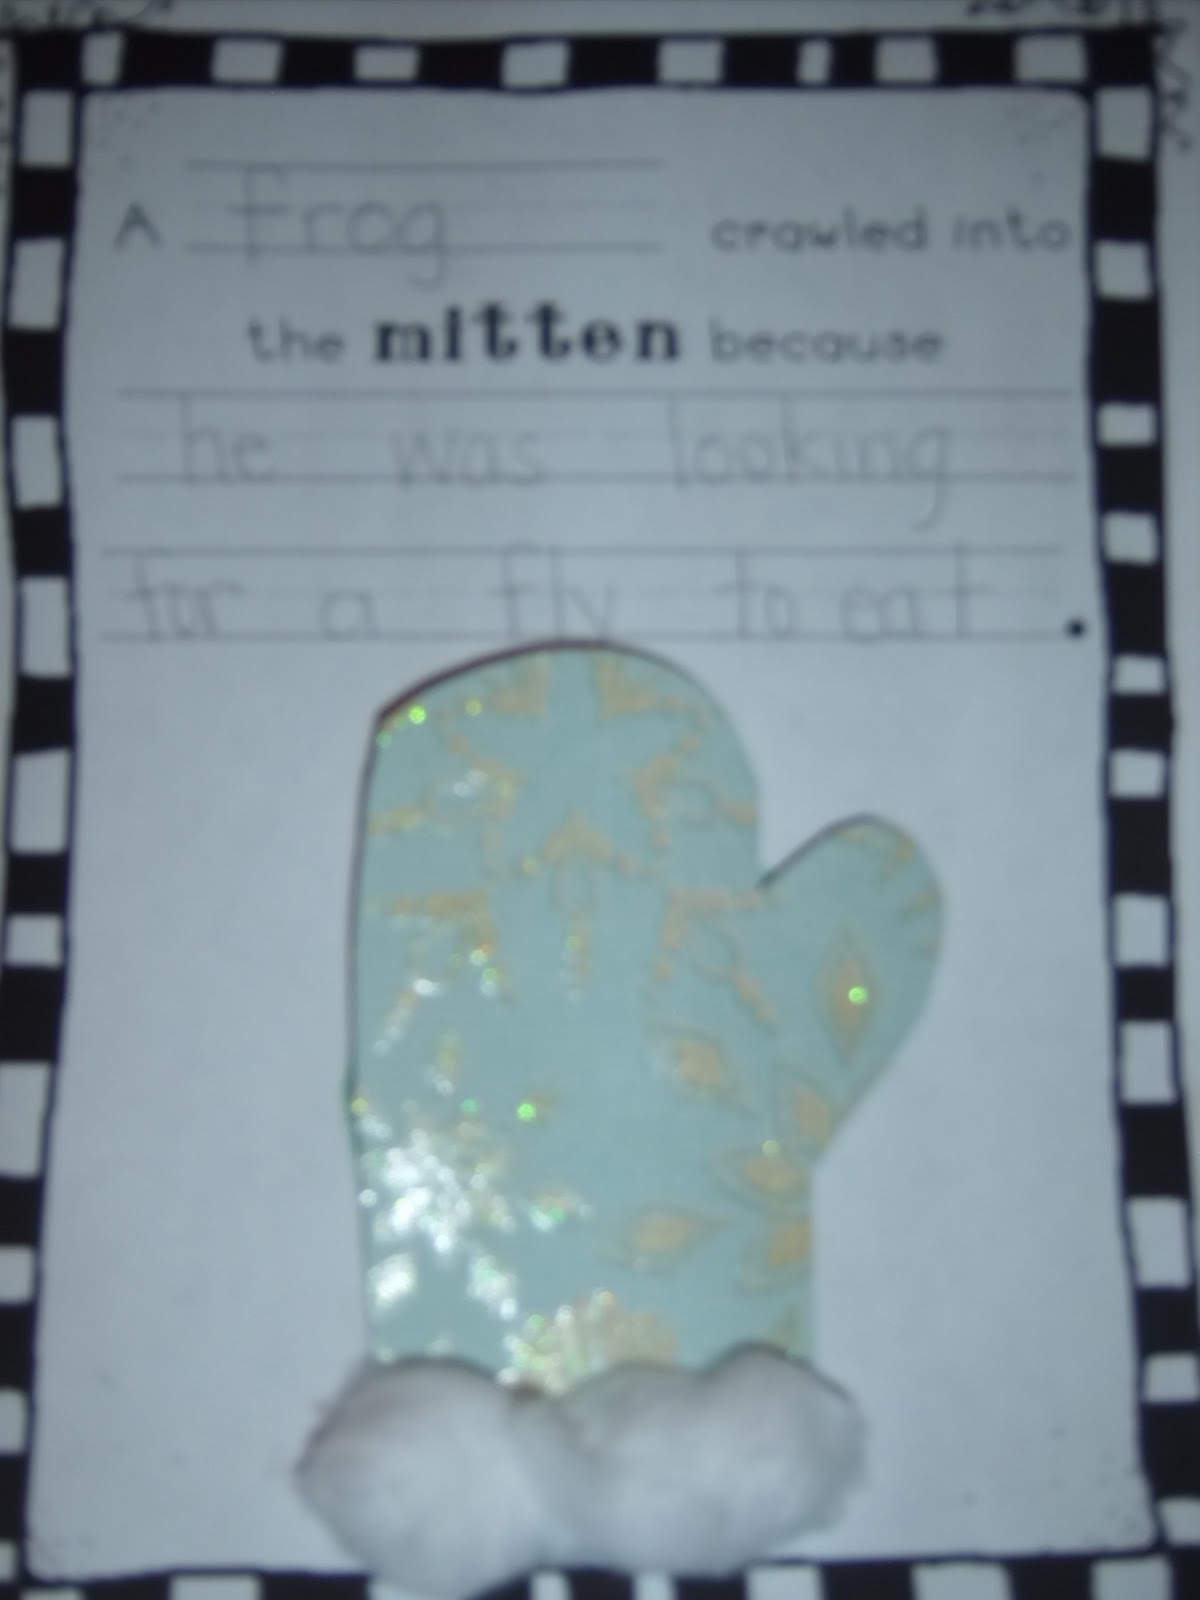 Only glue the bottom of the mitten to the page.